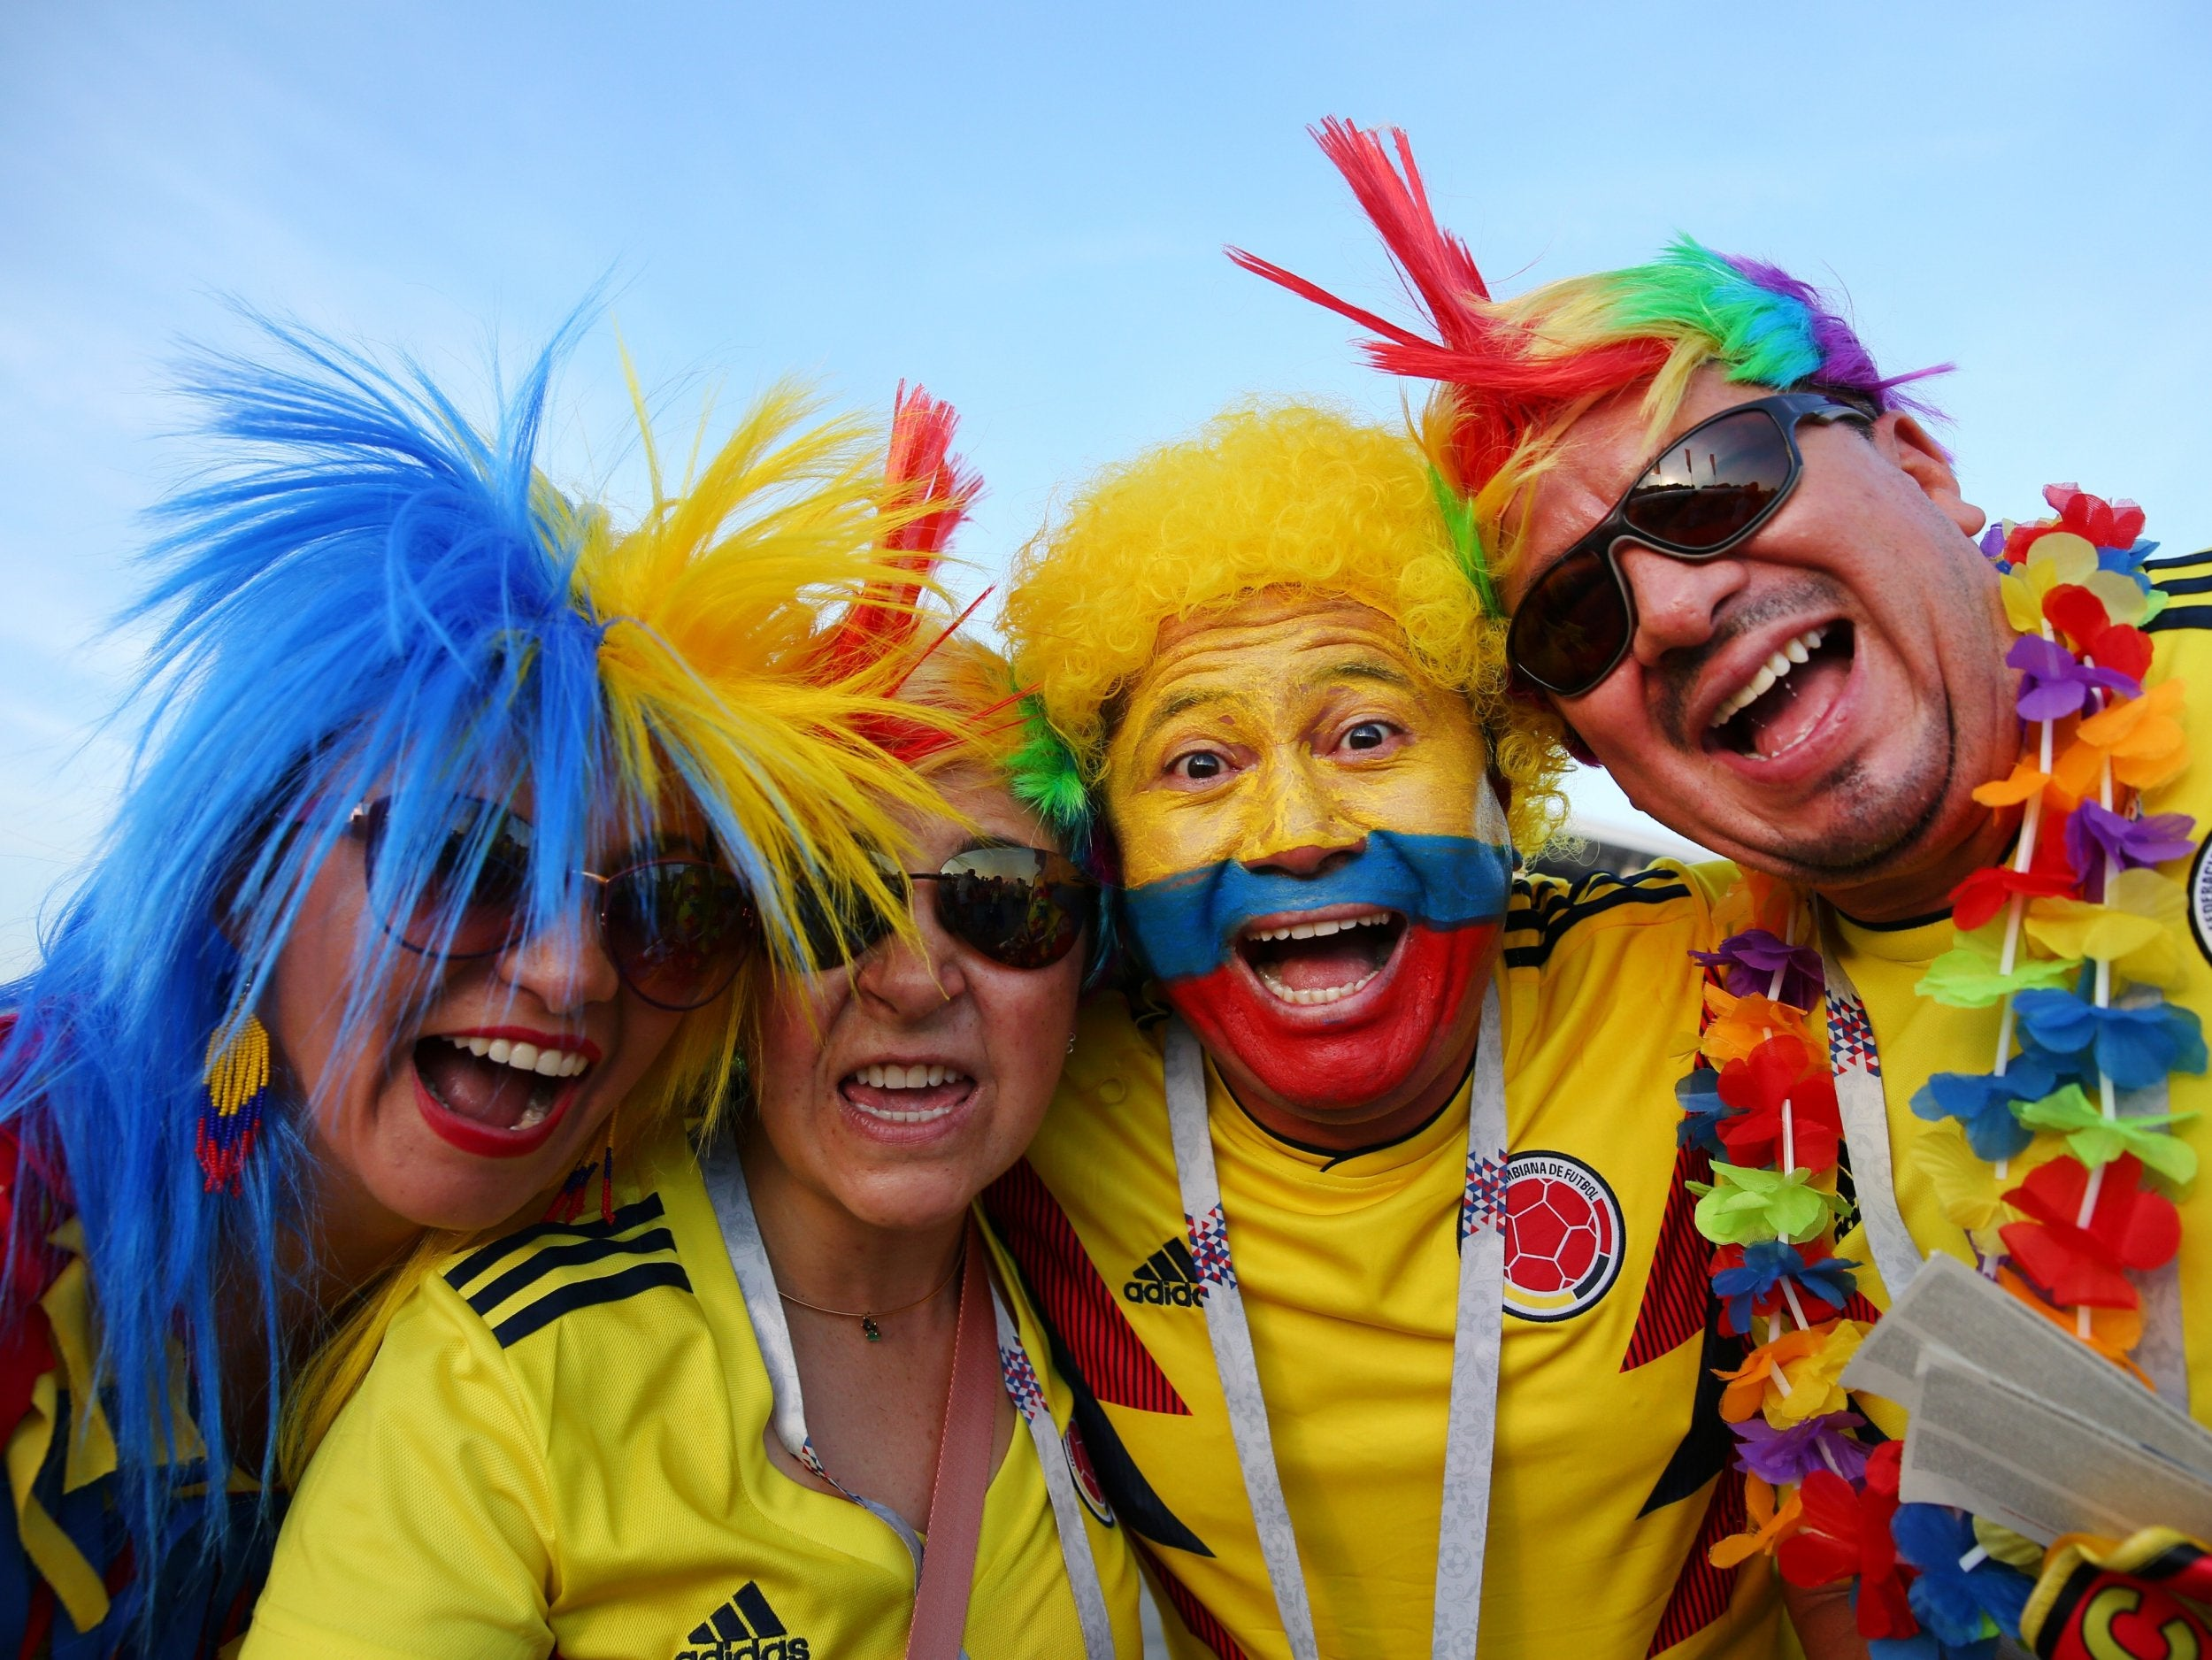 England vs Colombia: 'golden ticket' game keeps fans on edge until spot kicks seal gilt-edged tie